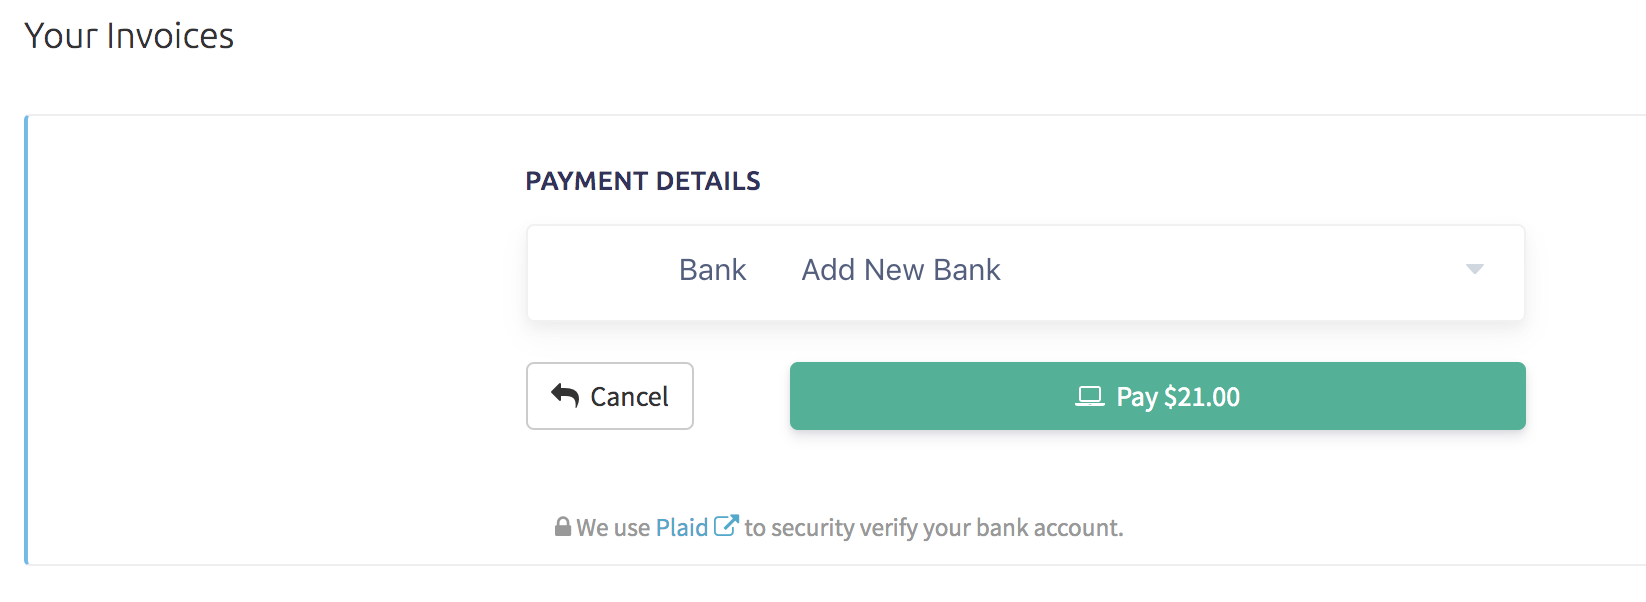 ACH payment option with options to add a new bank or use existing bank info to pay